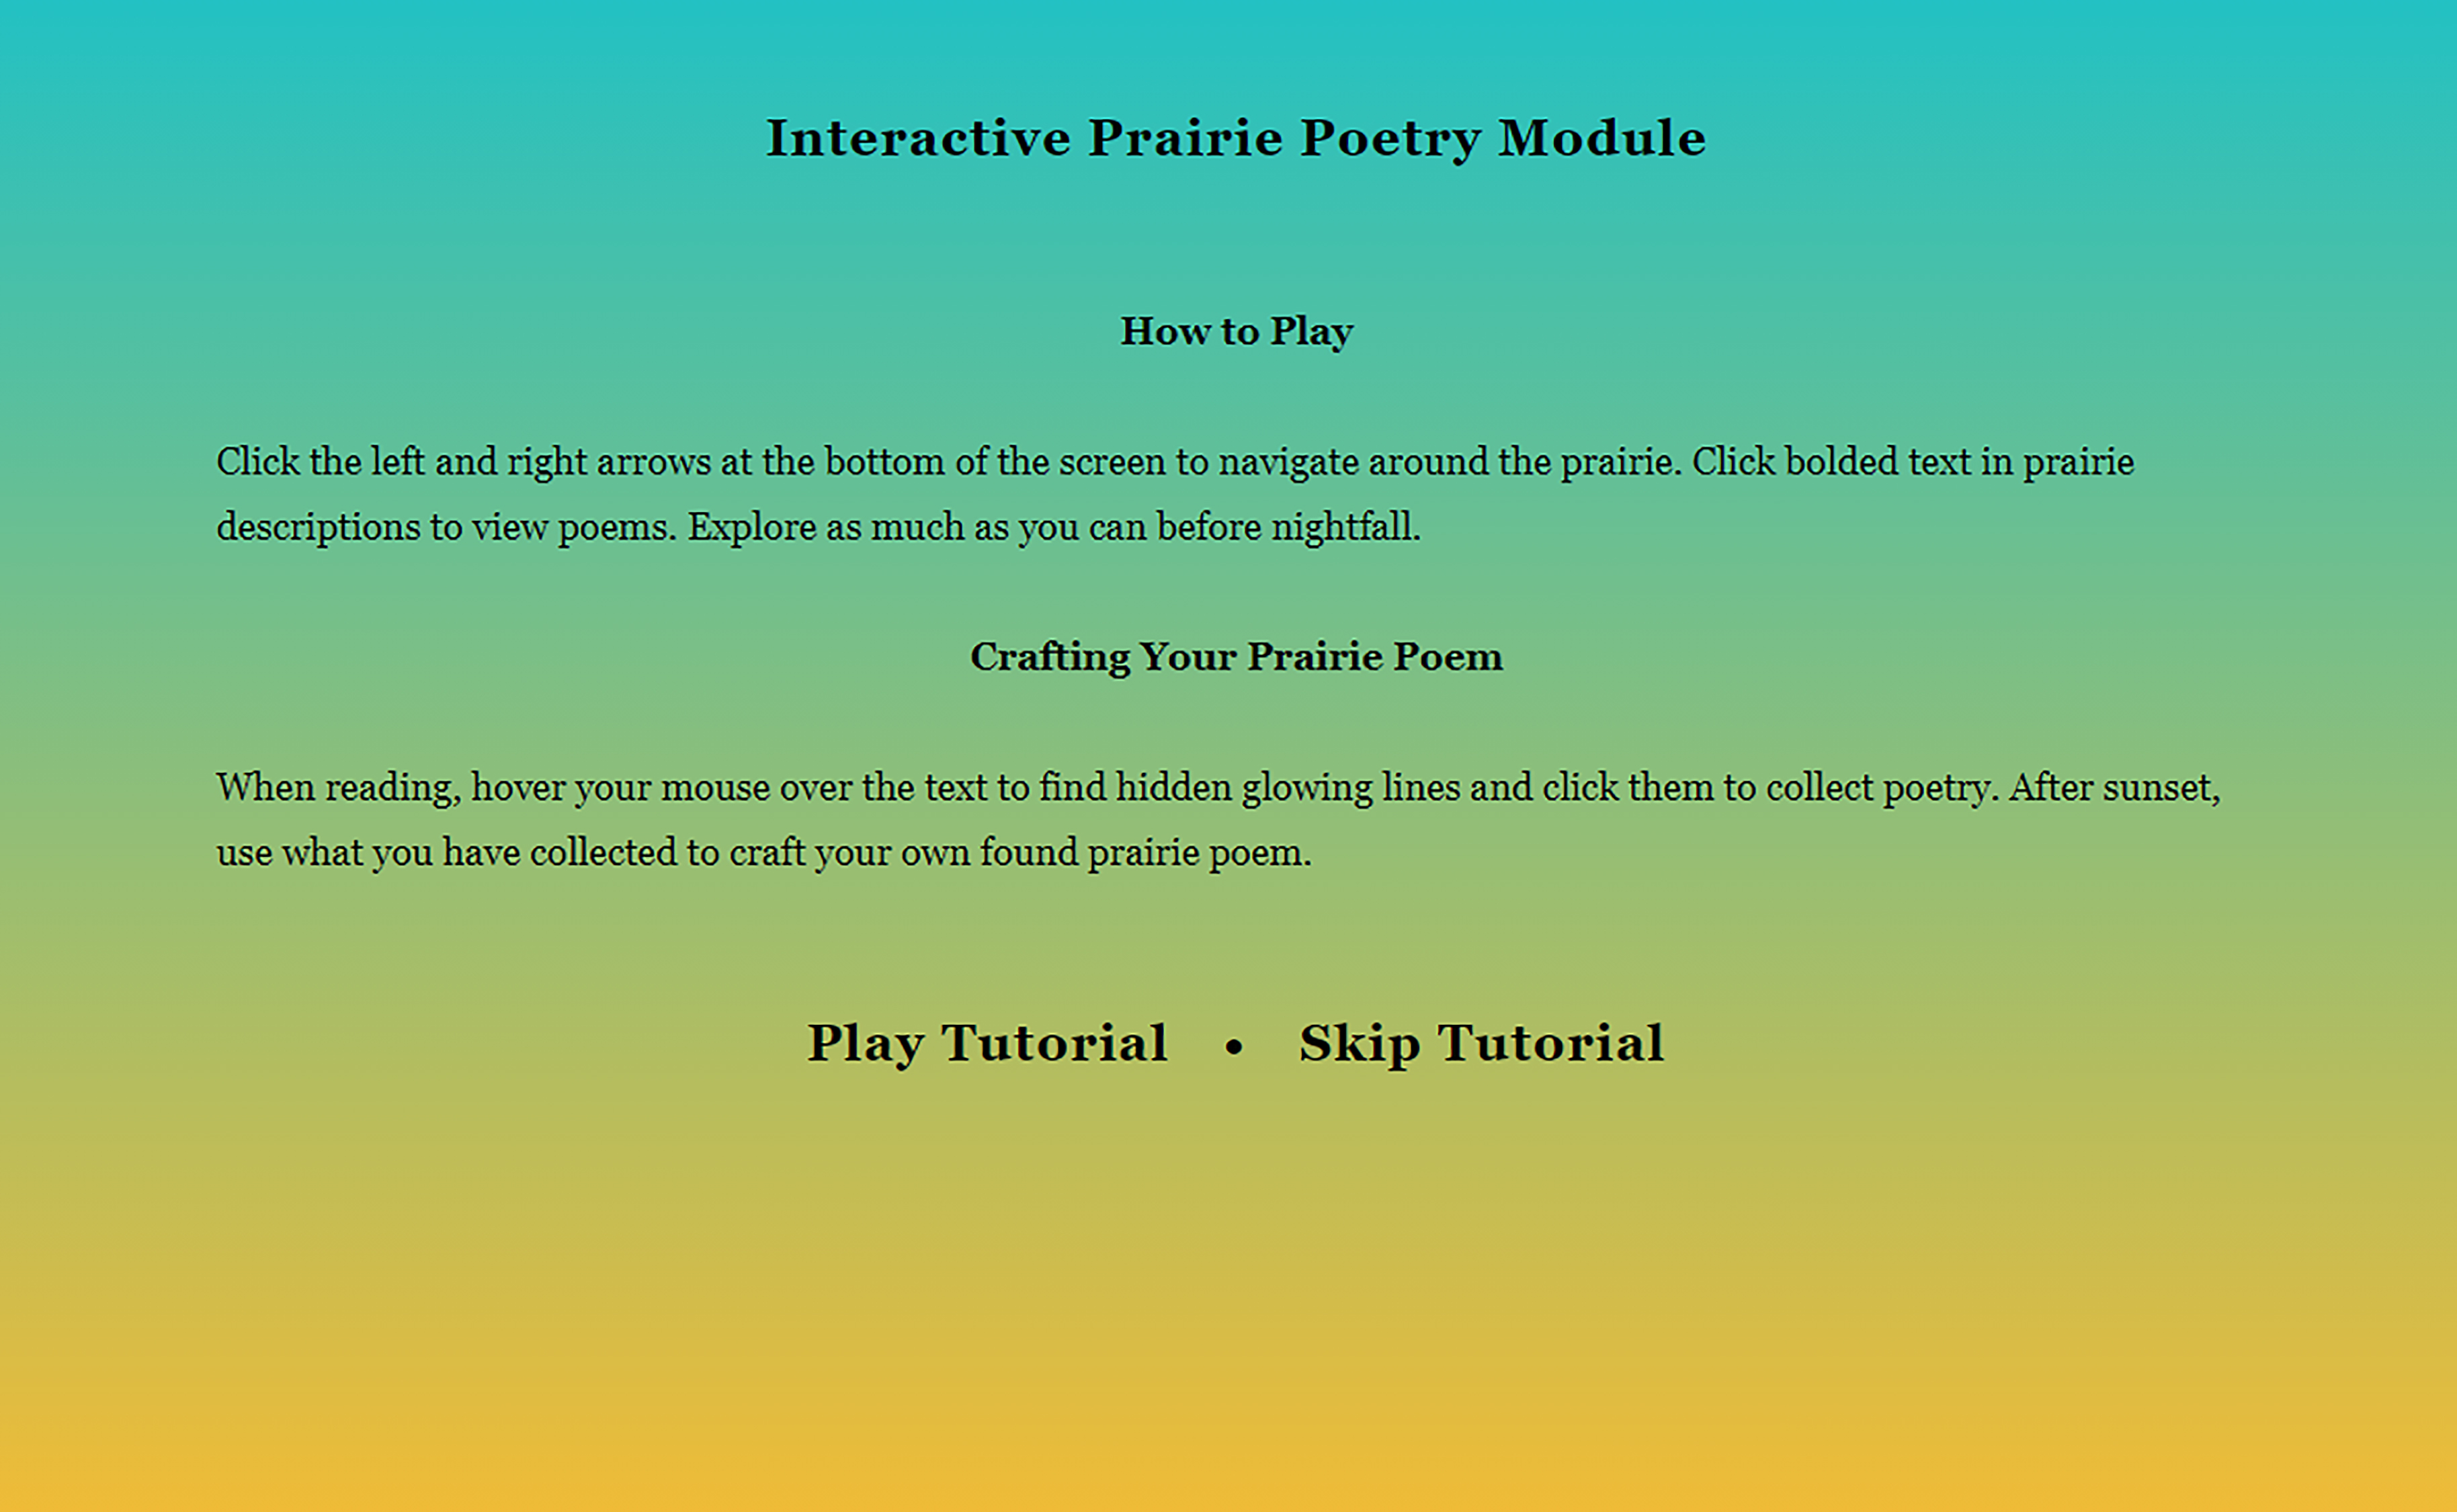 Click the image above to play the Interactive Prairie Poetry Module